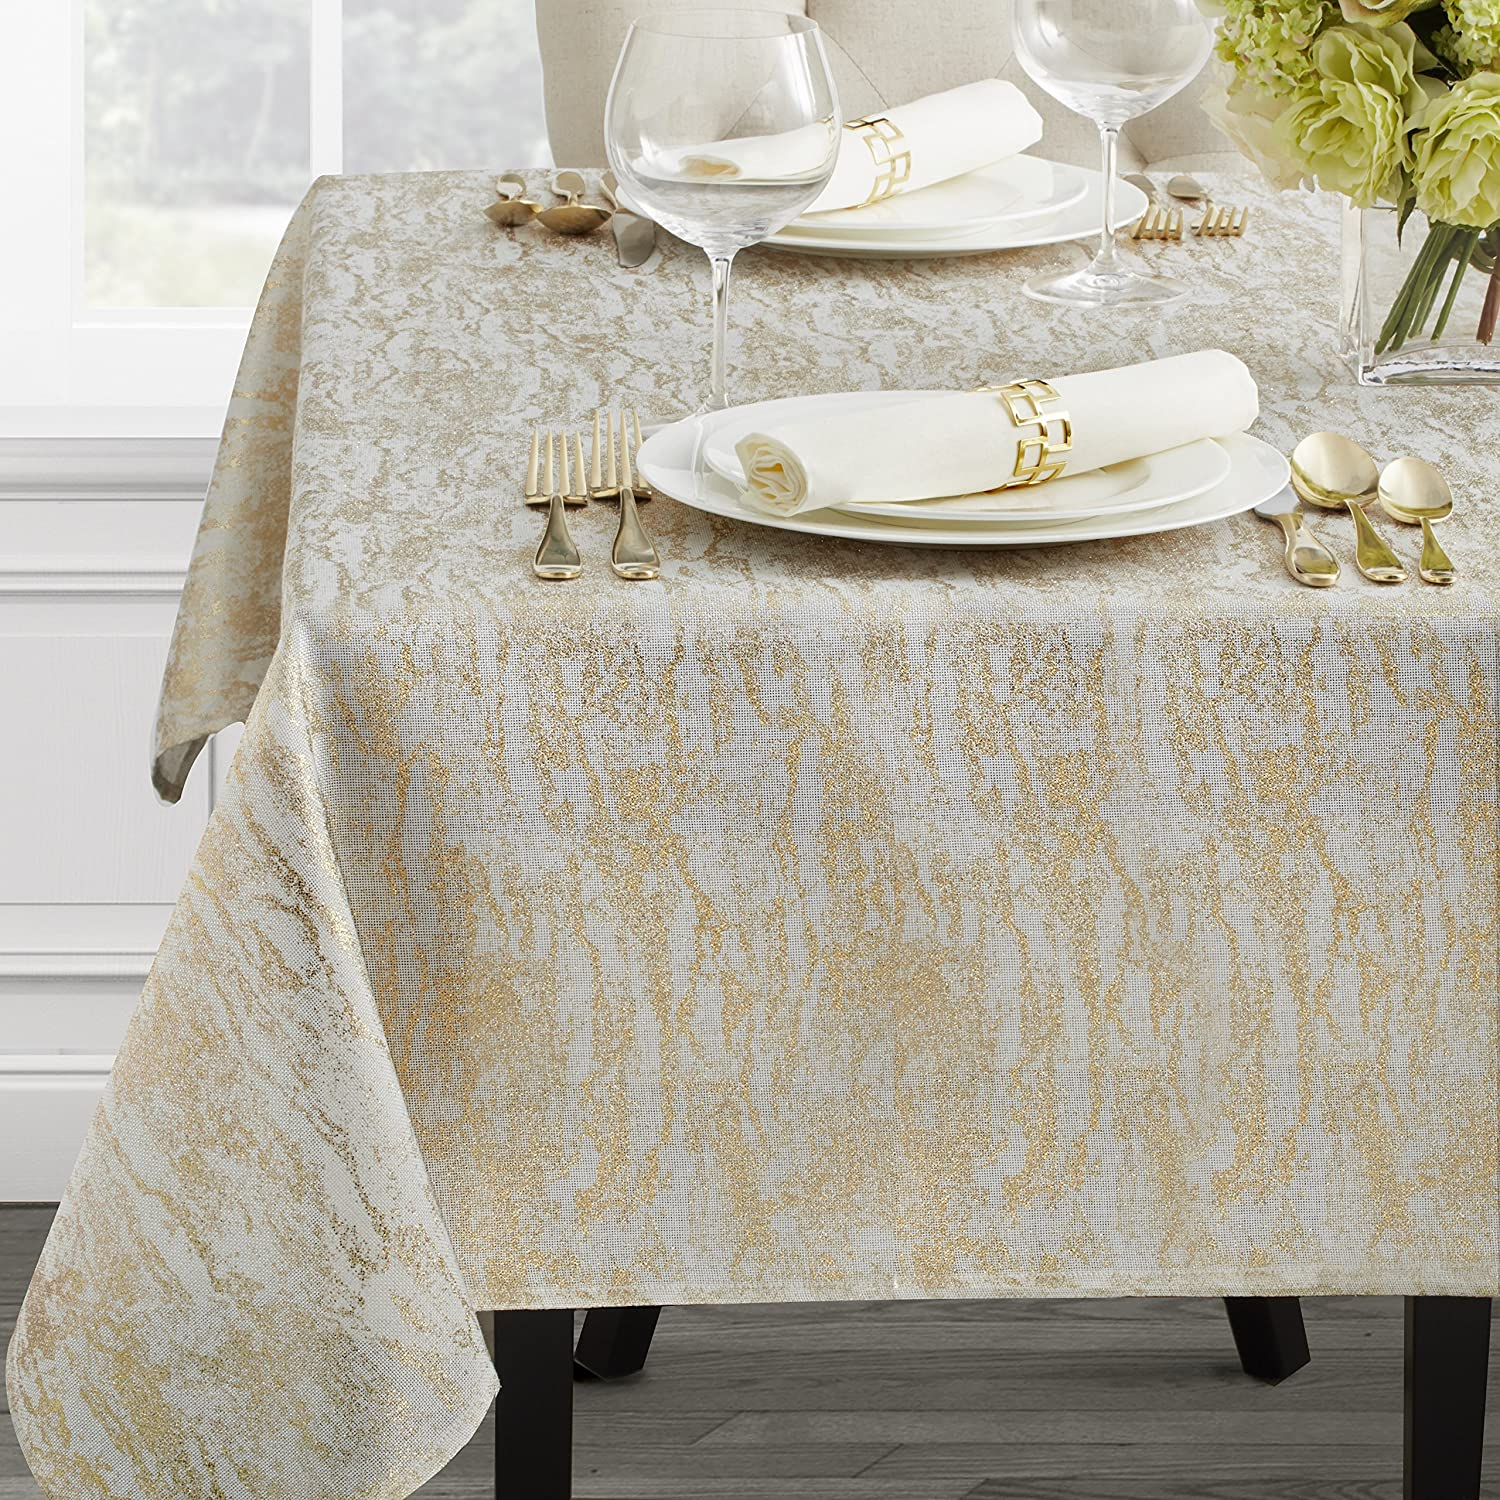 Benson Mills Harvest Legacy Damask Tablecloth (Gold, 60